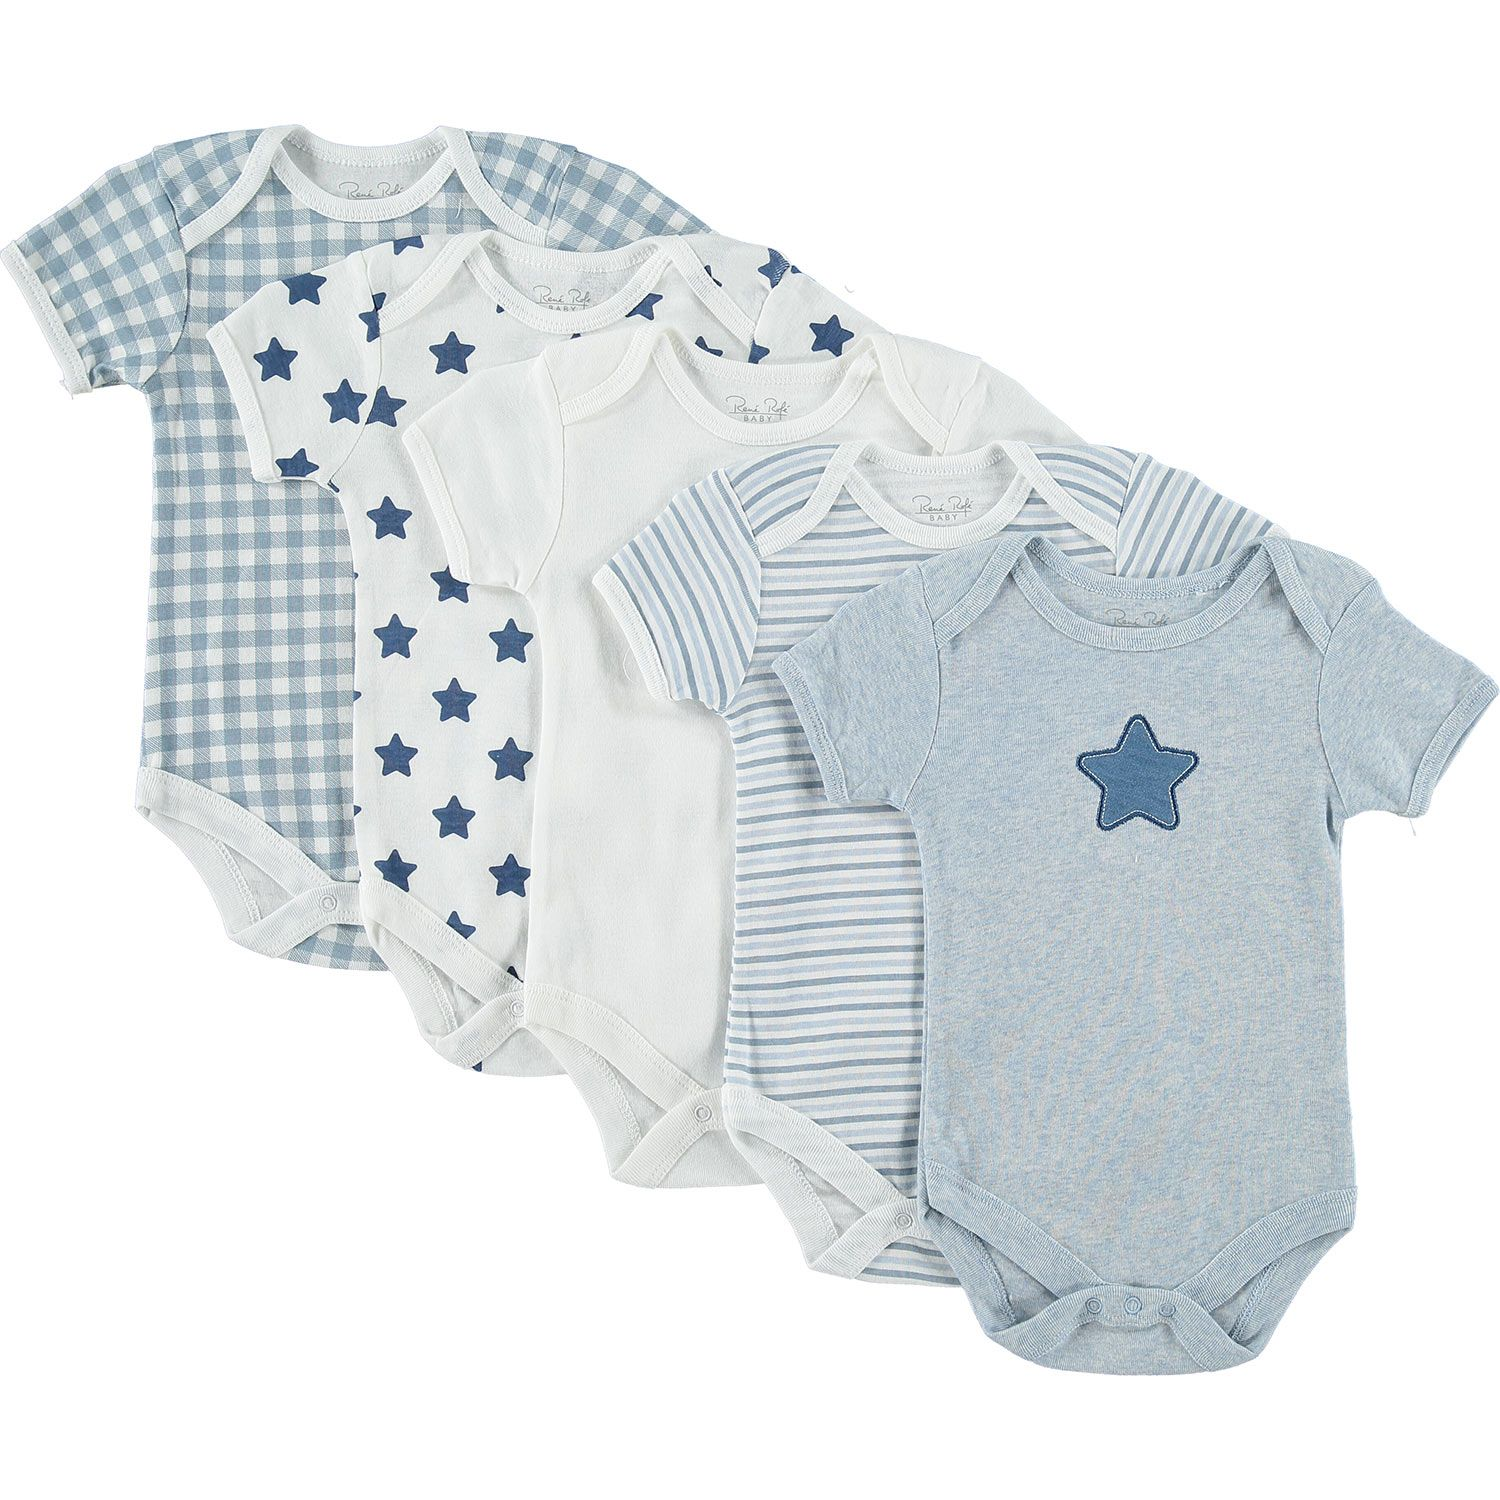 "Rene Rofe"" Five Pack Baby Grows TK Maxx"